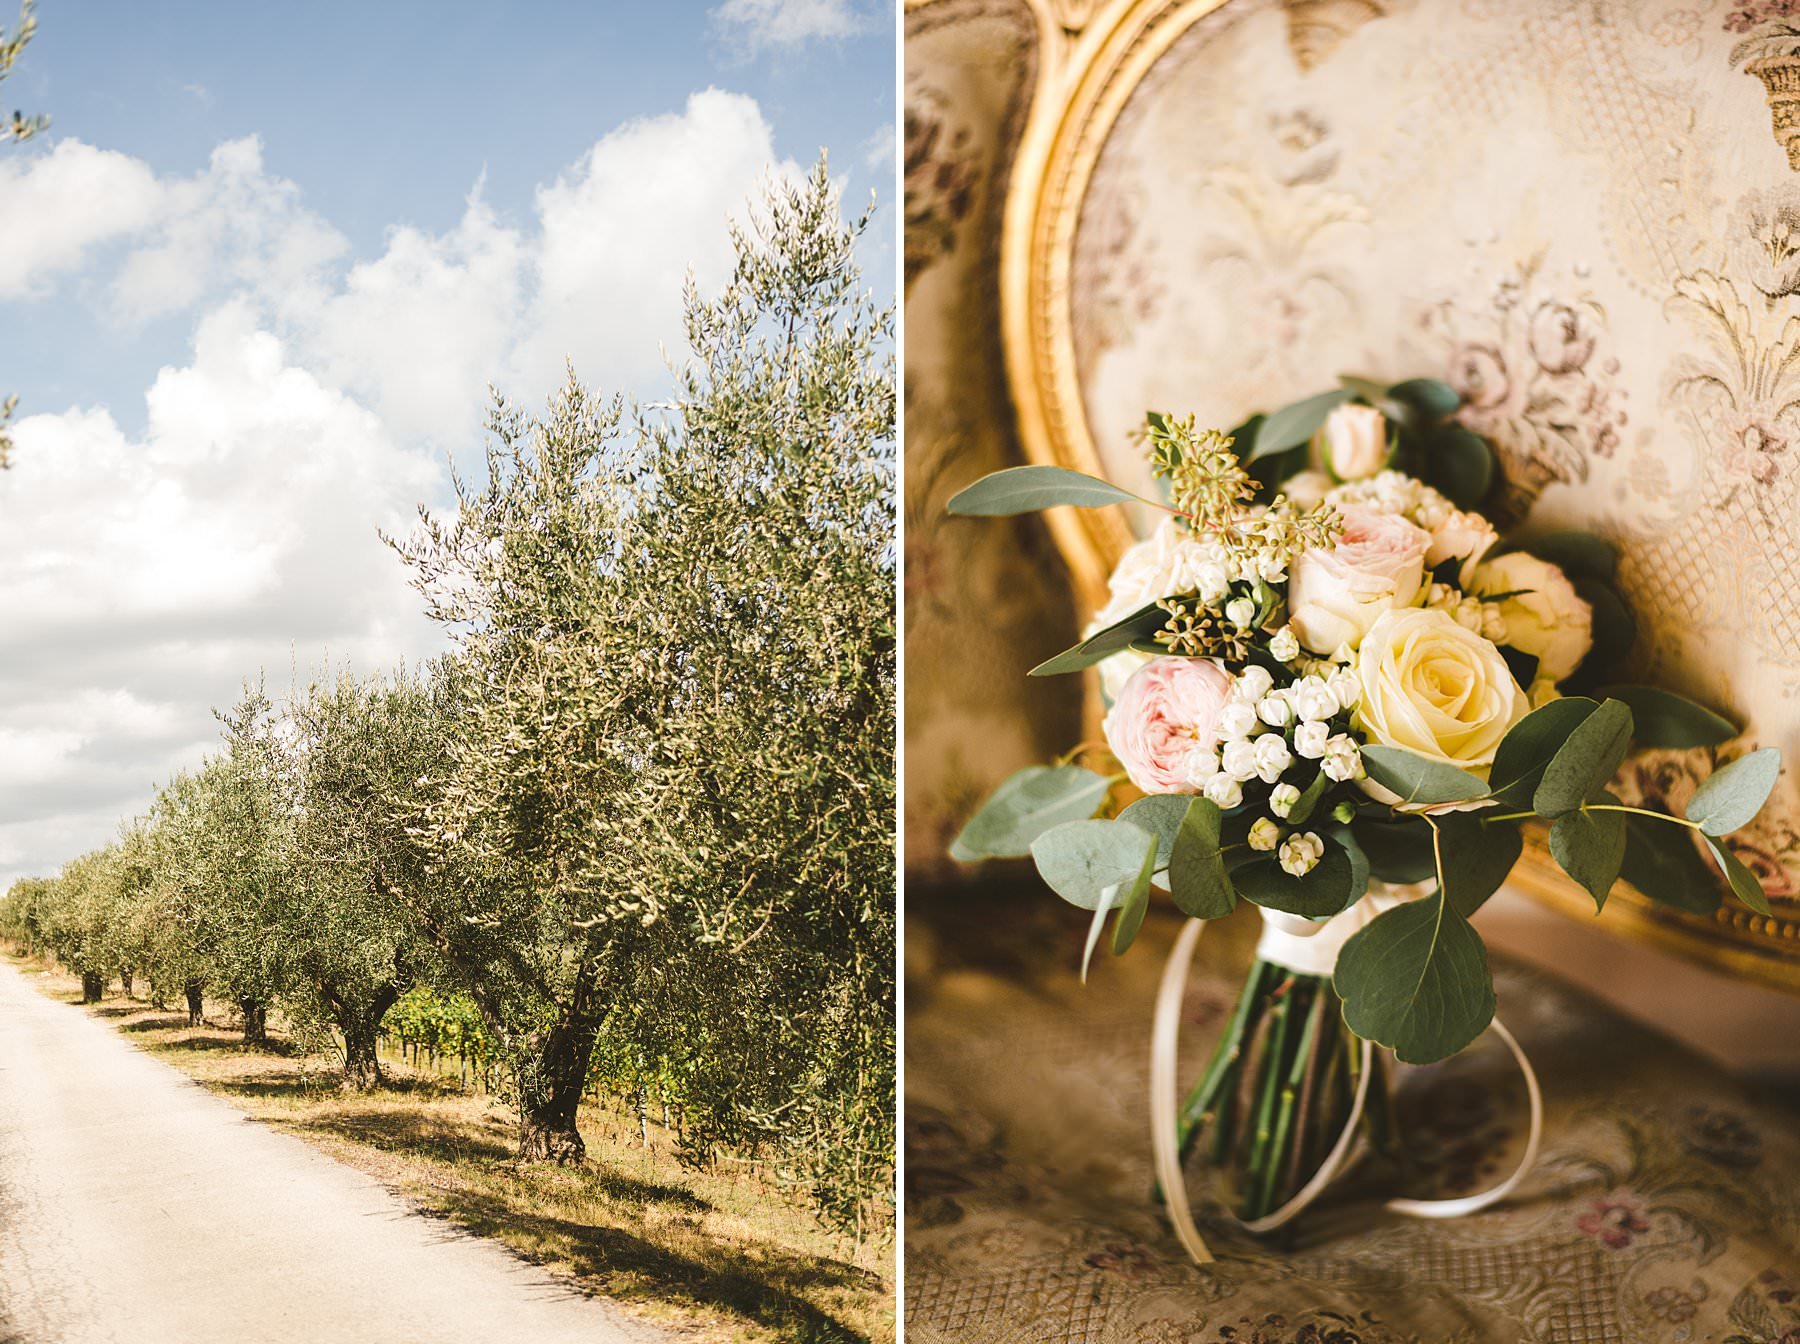 International wedding in Umbria was Relais Villa Monte Solare, a historic residence tucked in the countryside among rolling hills